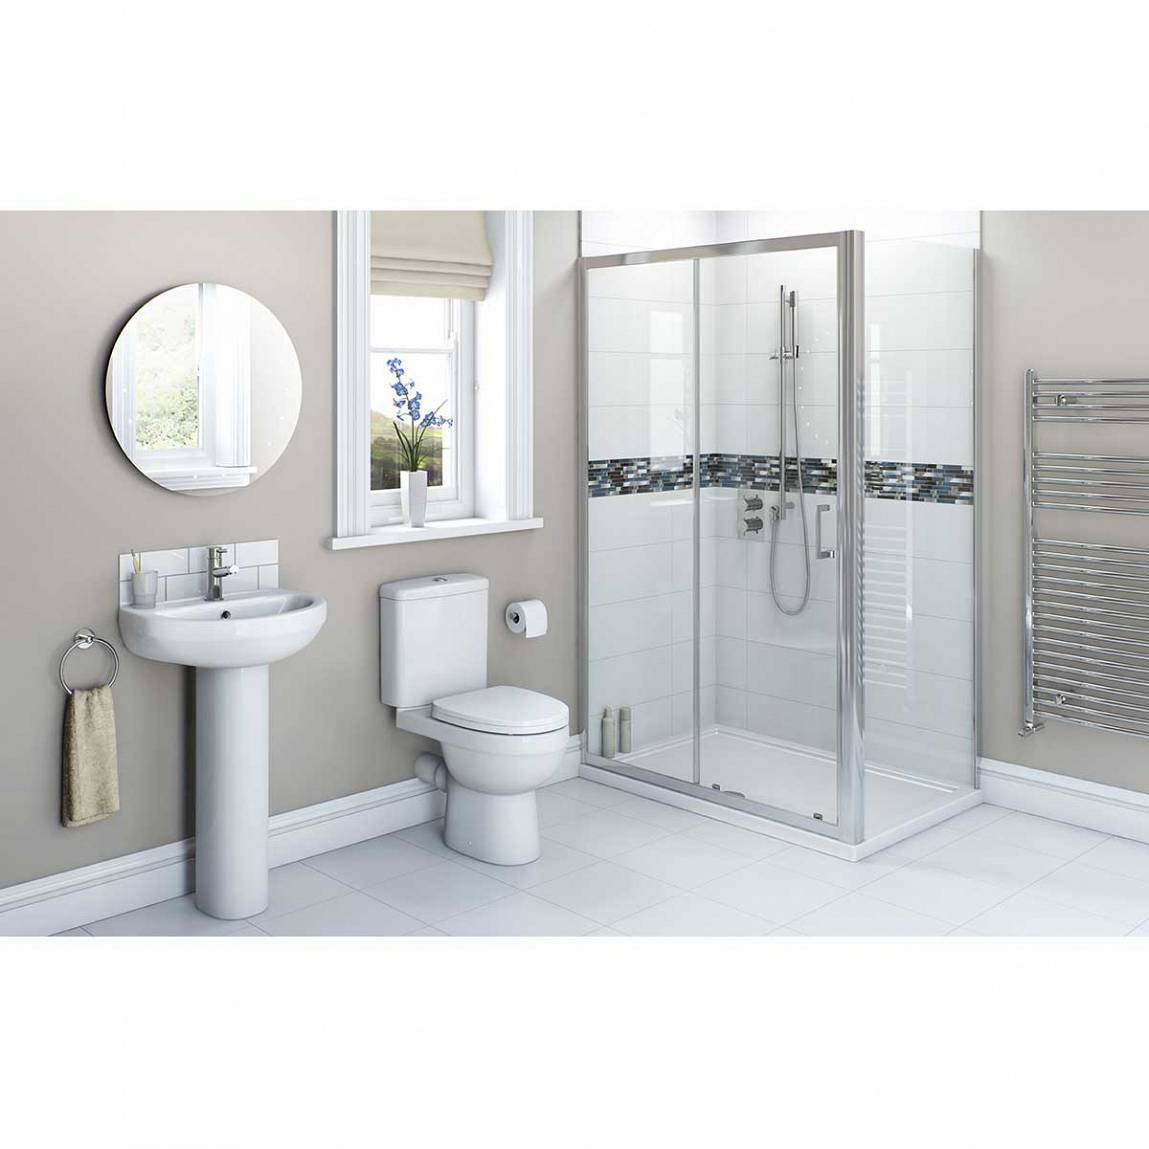 Image of Energy Bathroom set with 1100x800 Sliding Enclosure & Tray